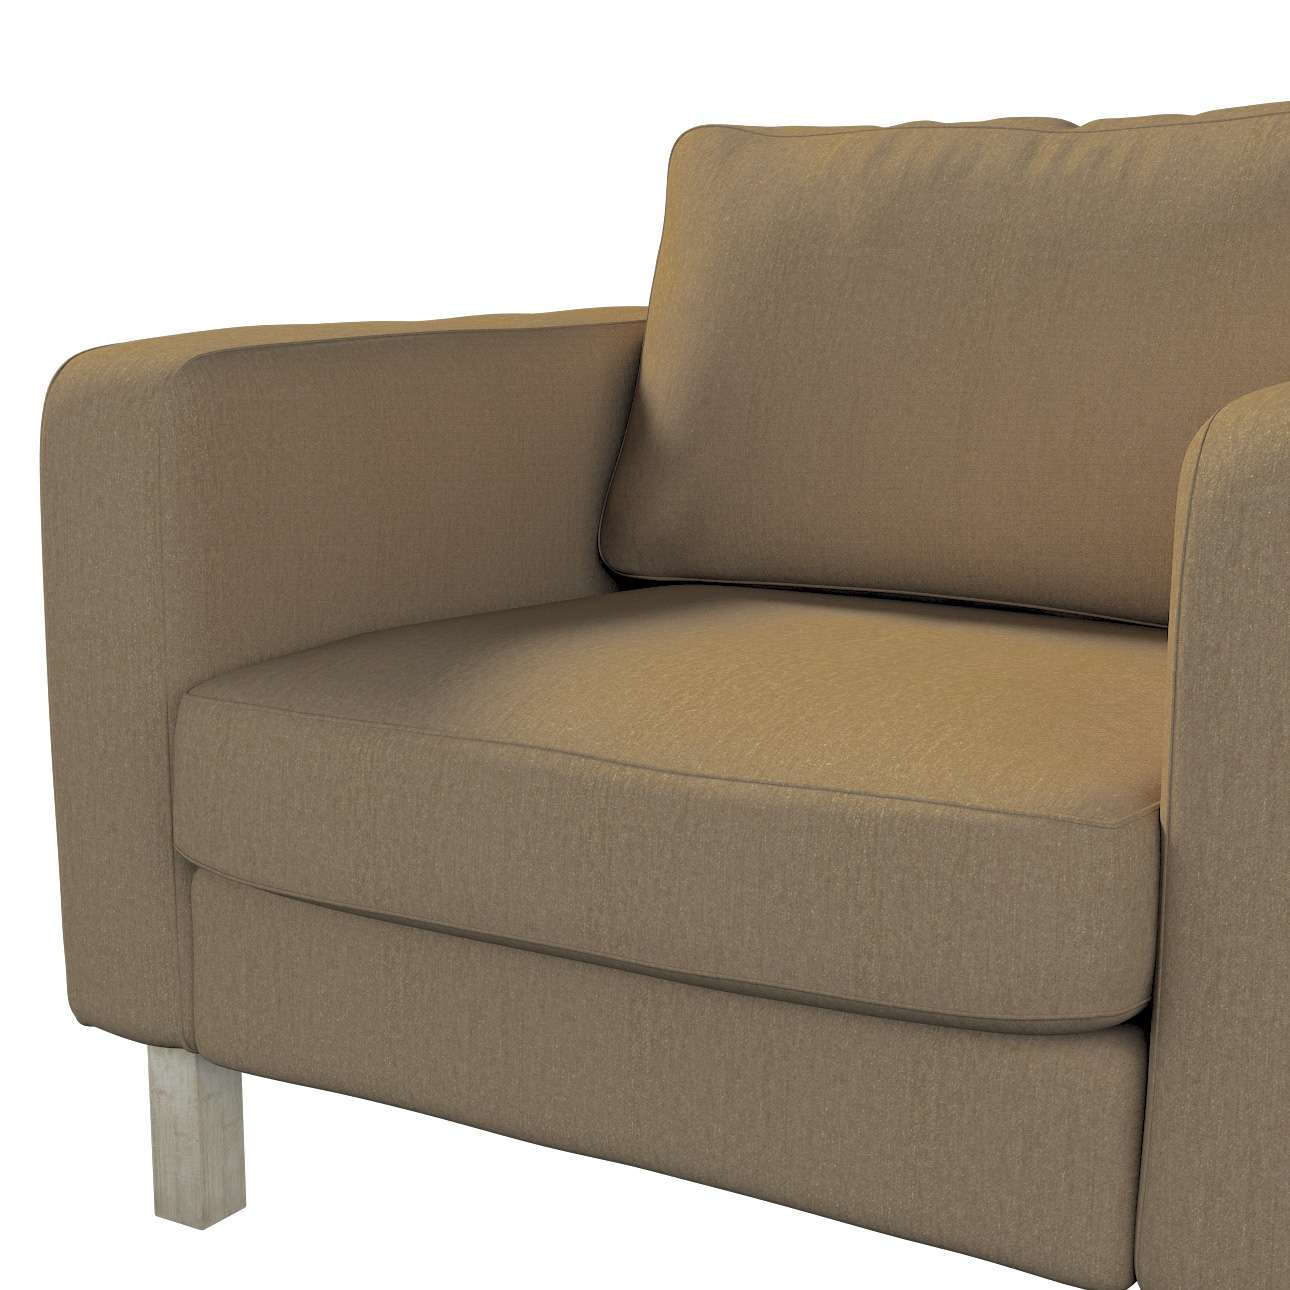 Karlstad armchair cover in collection Chenille, fabric: 702-21